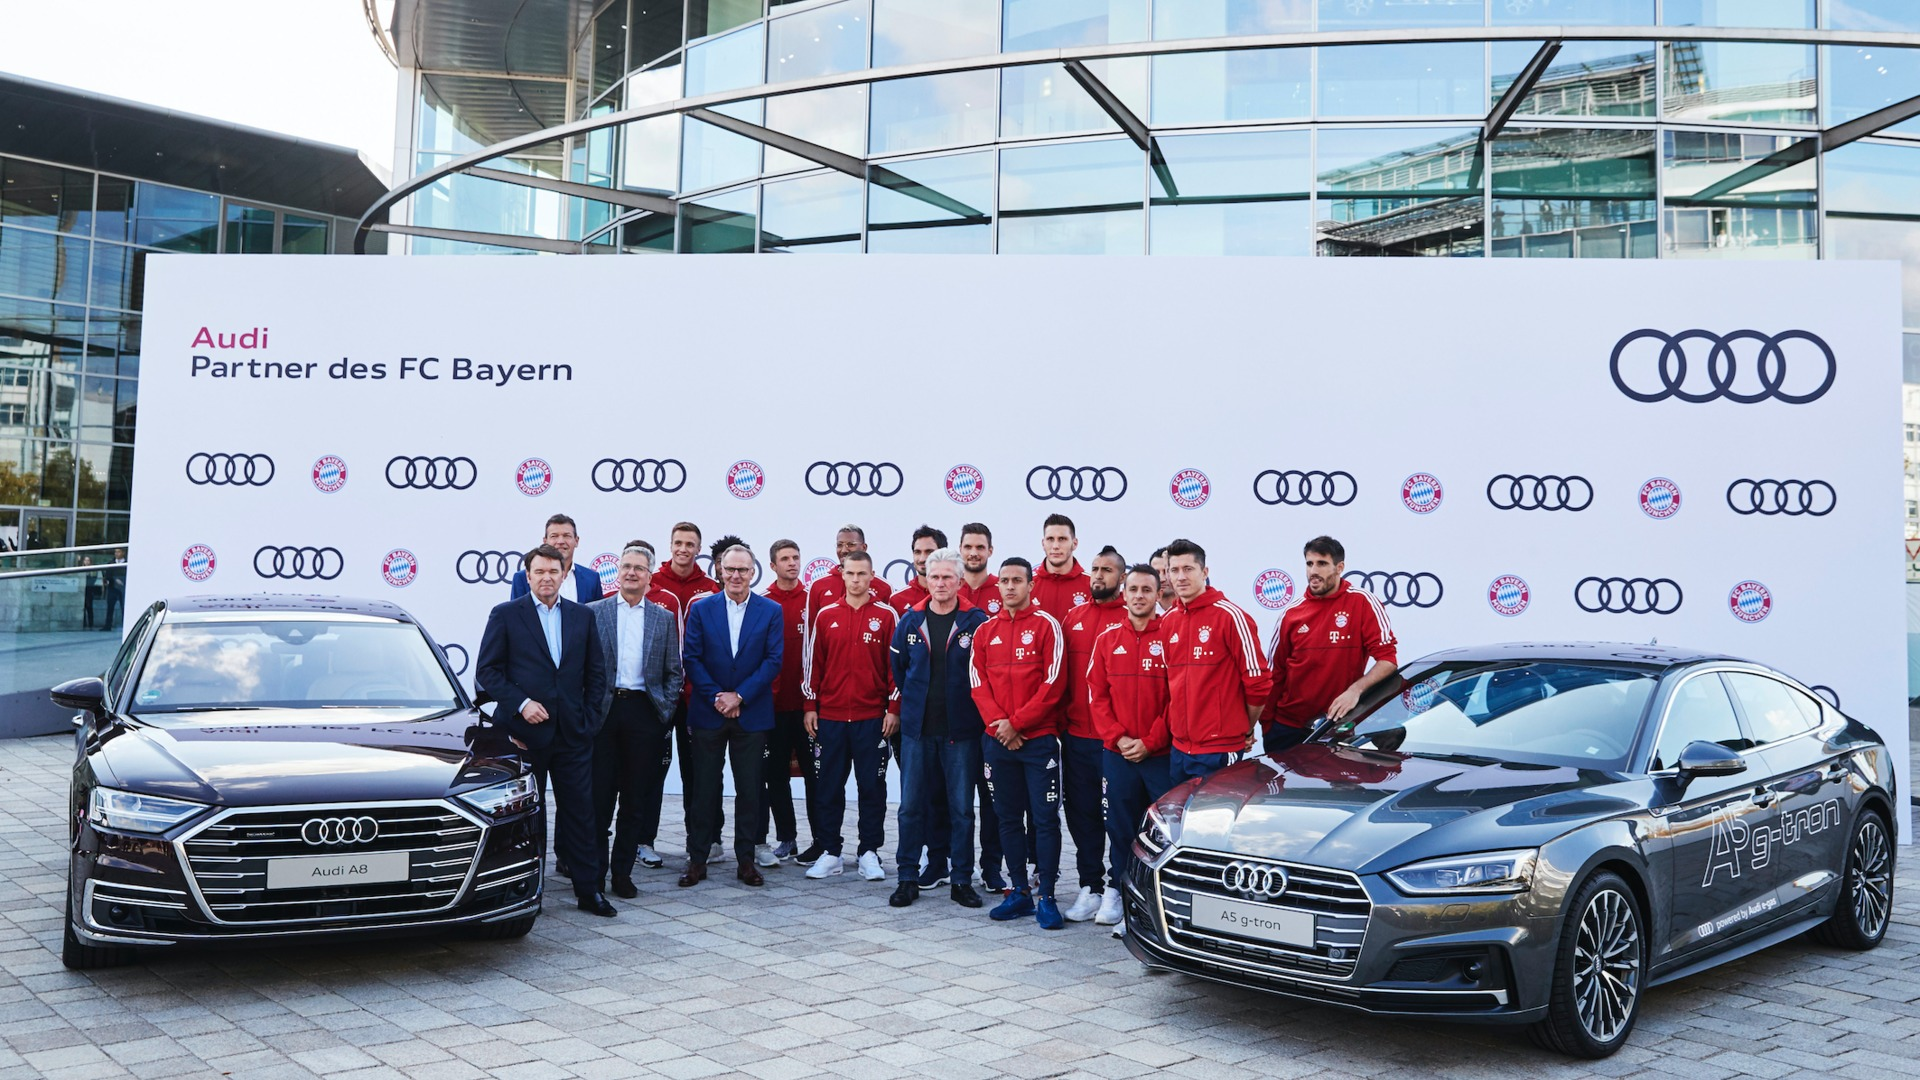 Footage: FC Bayern München receives new Audi models